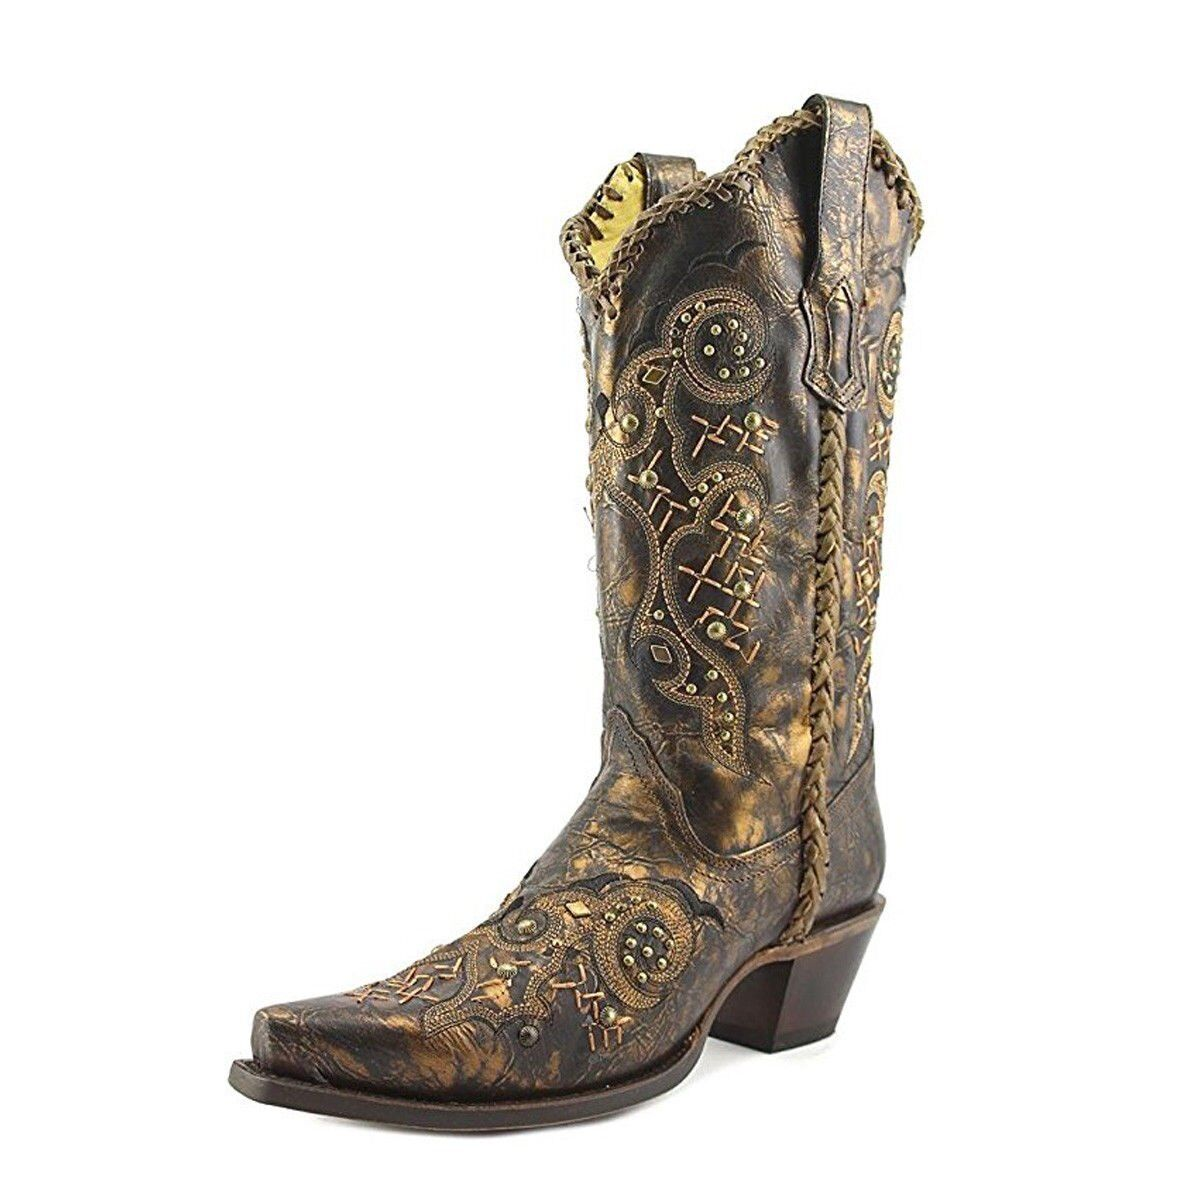 CORRAL Women's Leather Laced and Studded Snip Toe Cowgirl Boots R1217